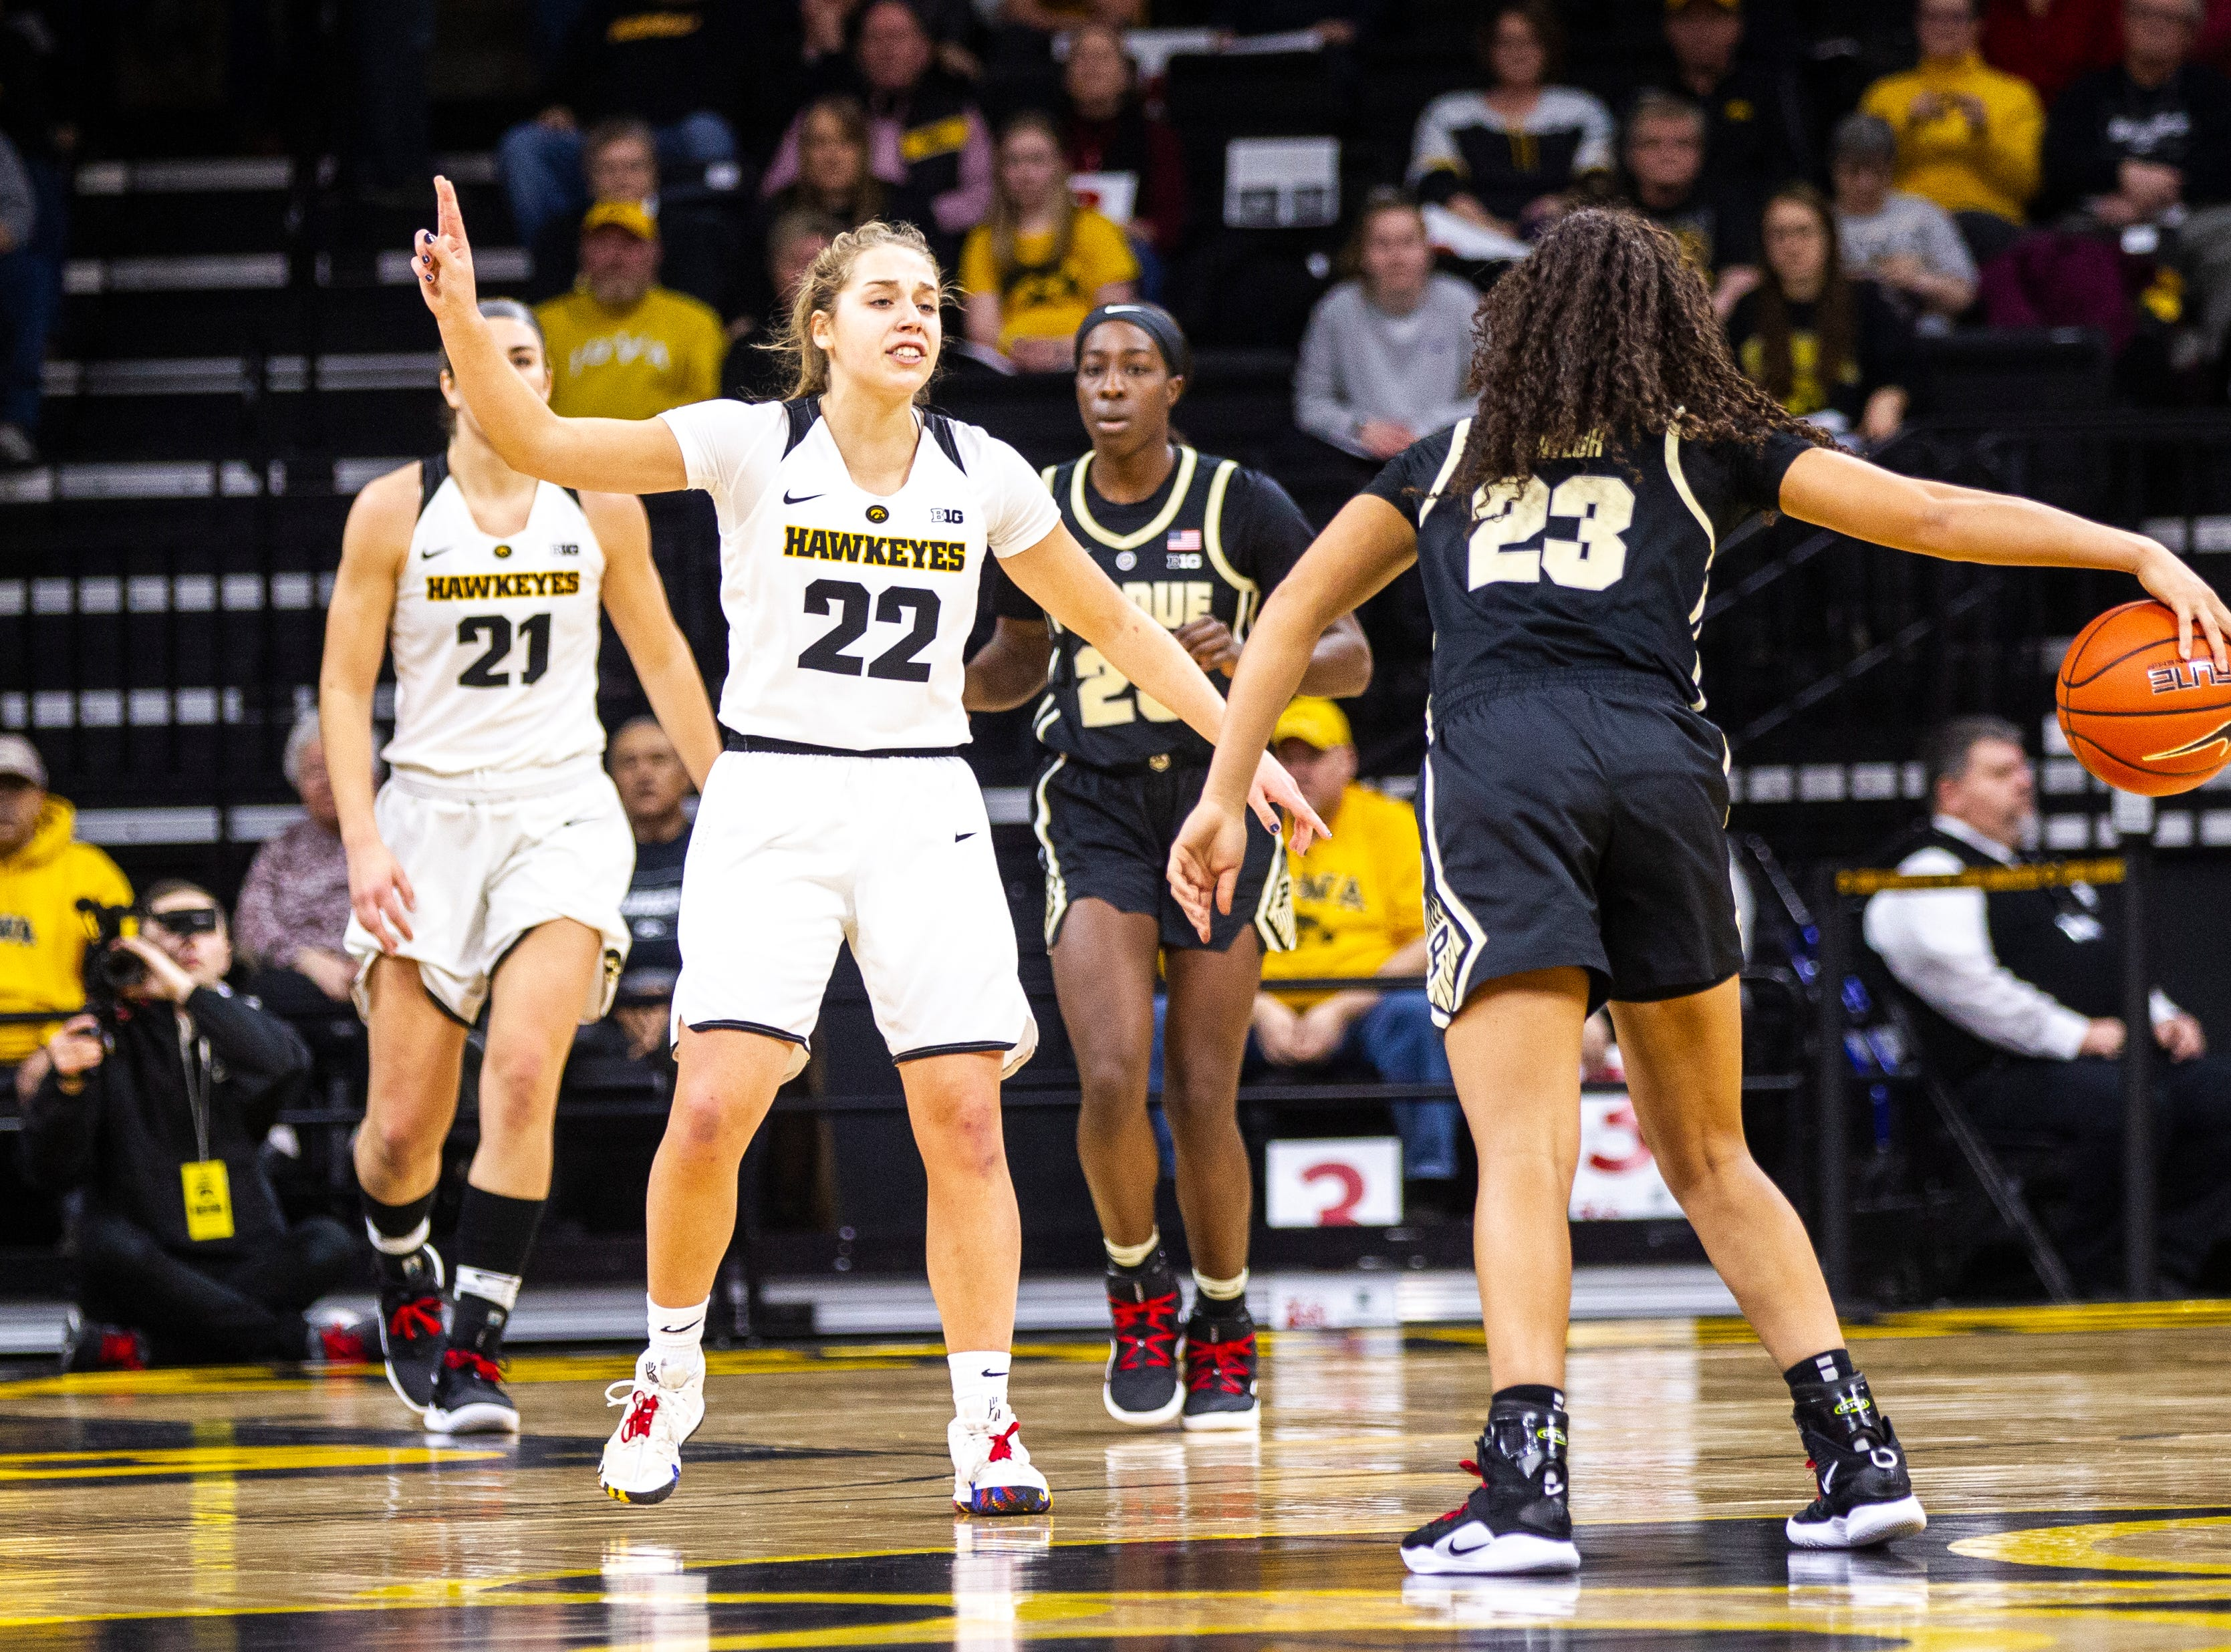 Iowa guard Kathleen Doyle (22) settles in on defense during a NCAA Big Ten Conference women's basketball game on Sunday, Jan. 27, 2019, at Carver-Hawkeye Arena in Iowa City, Iowa.